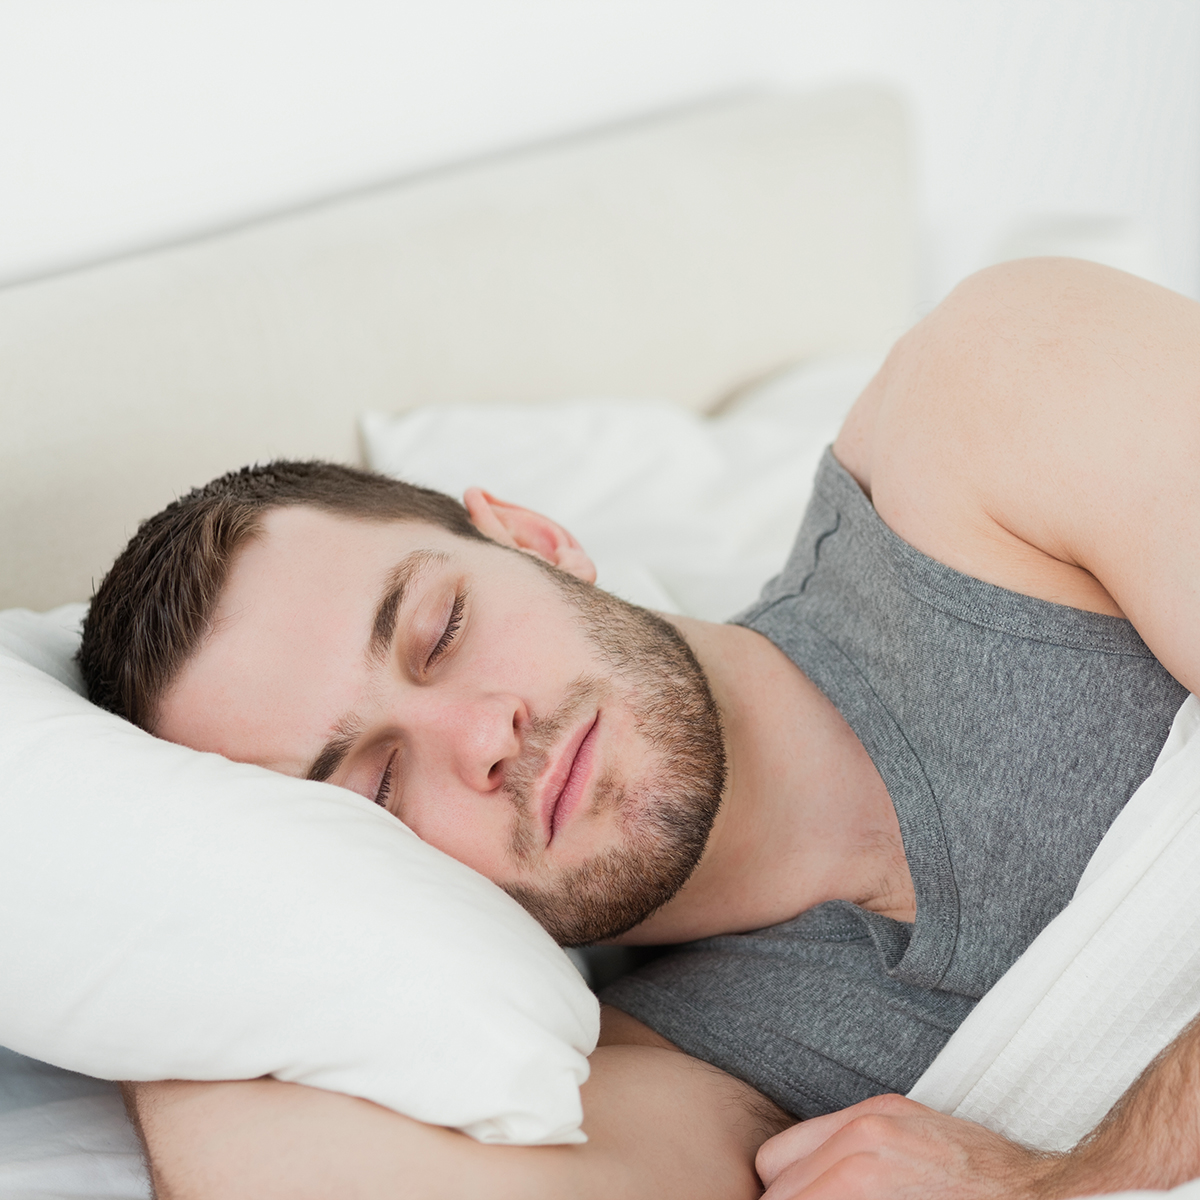 Handsome man sleeping